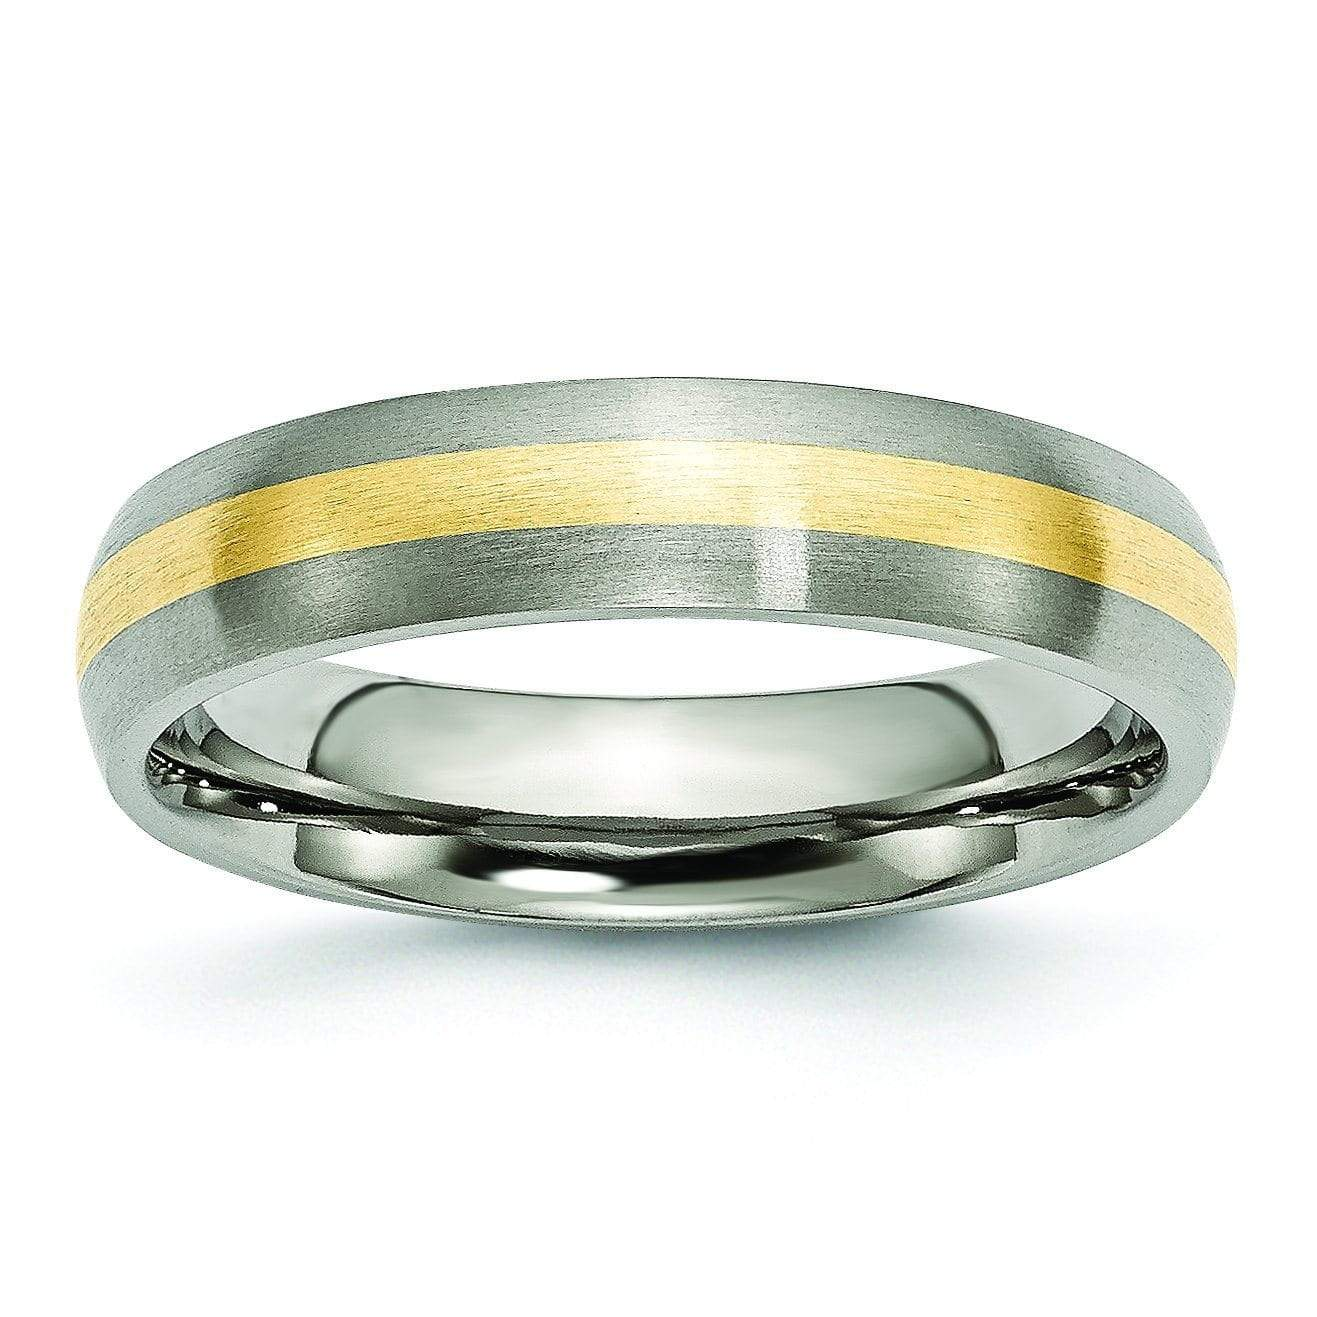 14k Yellow Gold Inlay Titanium Ring Matte Finish in 5mm Titanium Wedding Rings deBebians